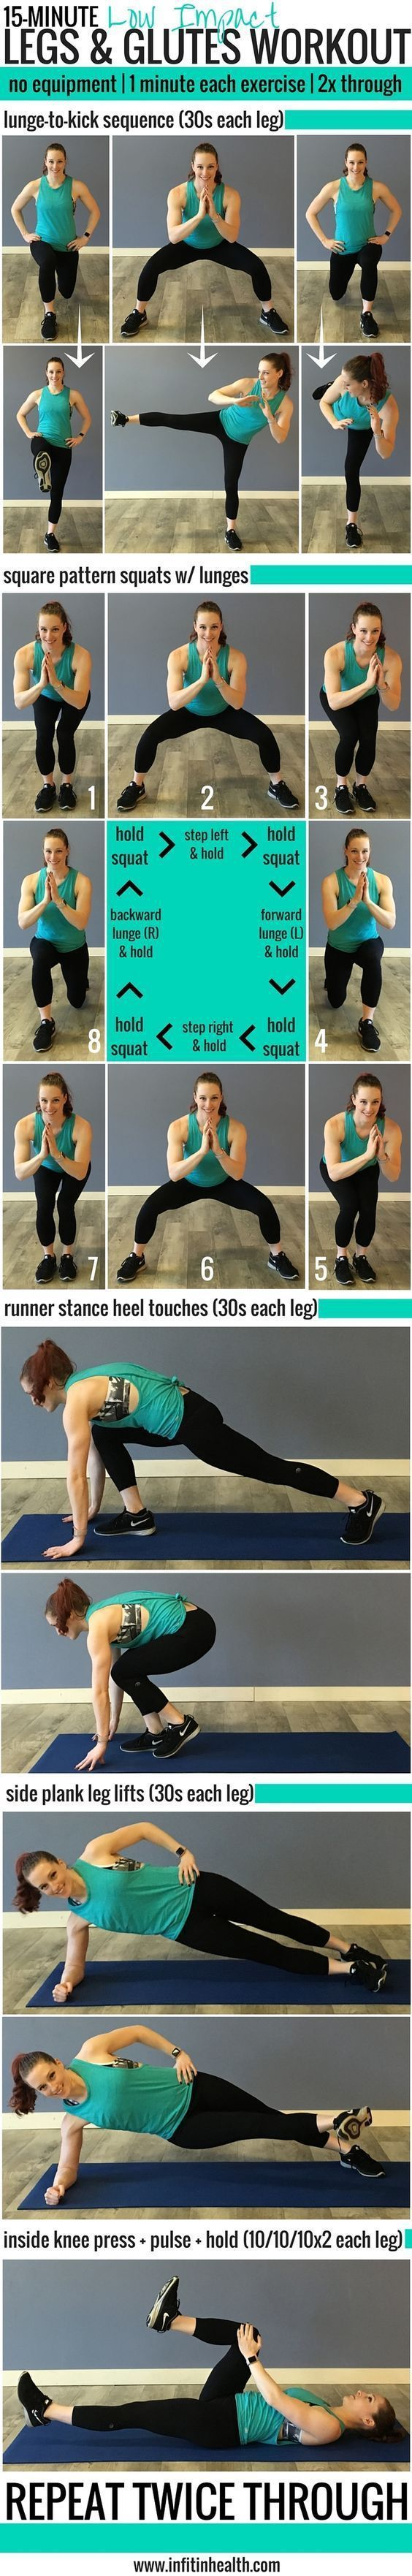 15-Minute Legs and Glutes Workout.